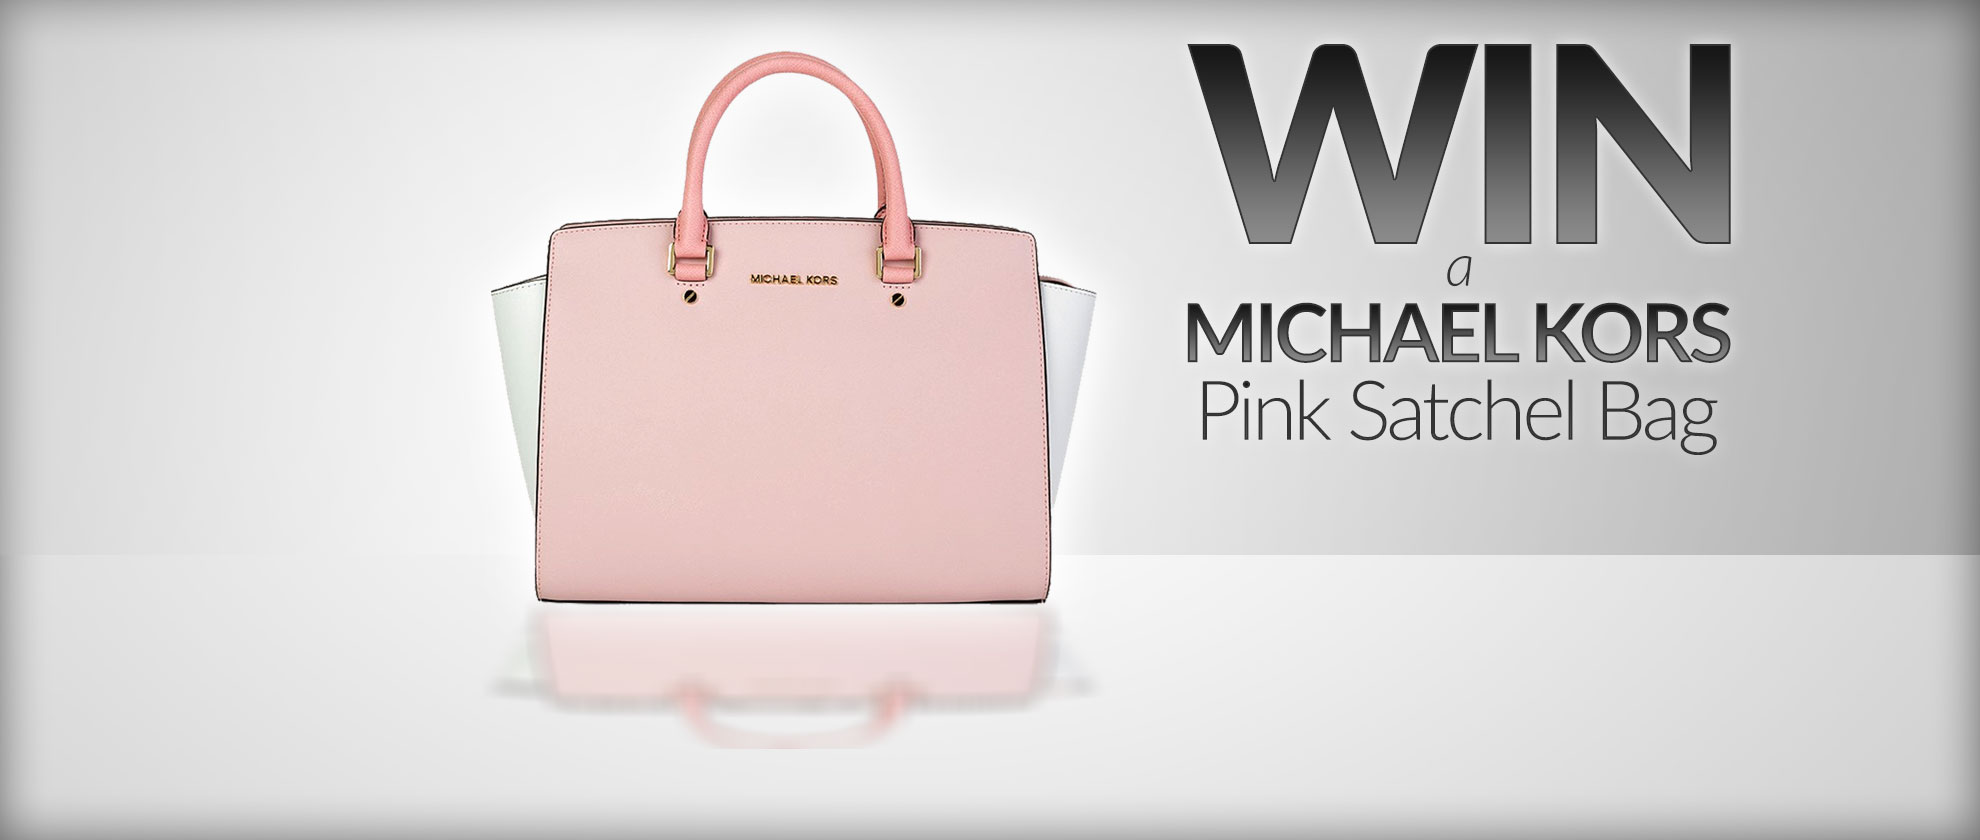 Win a Michael Kors Pink Satchel Bag